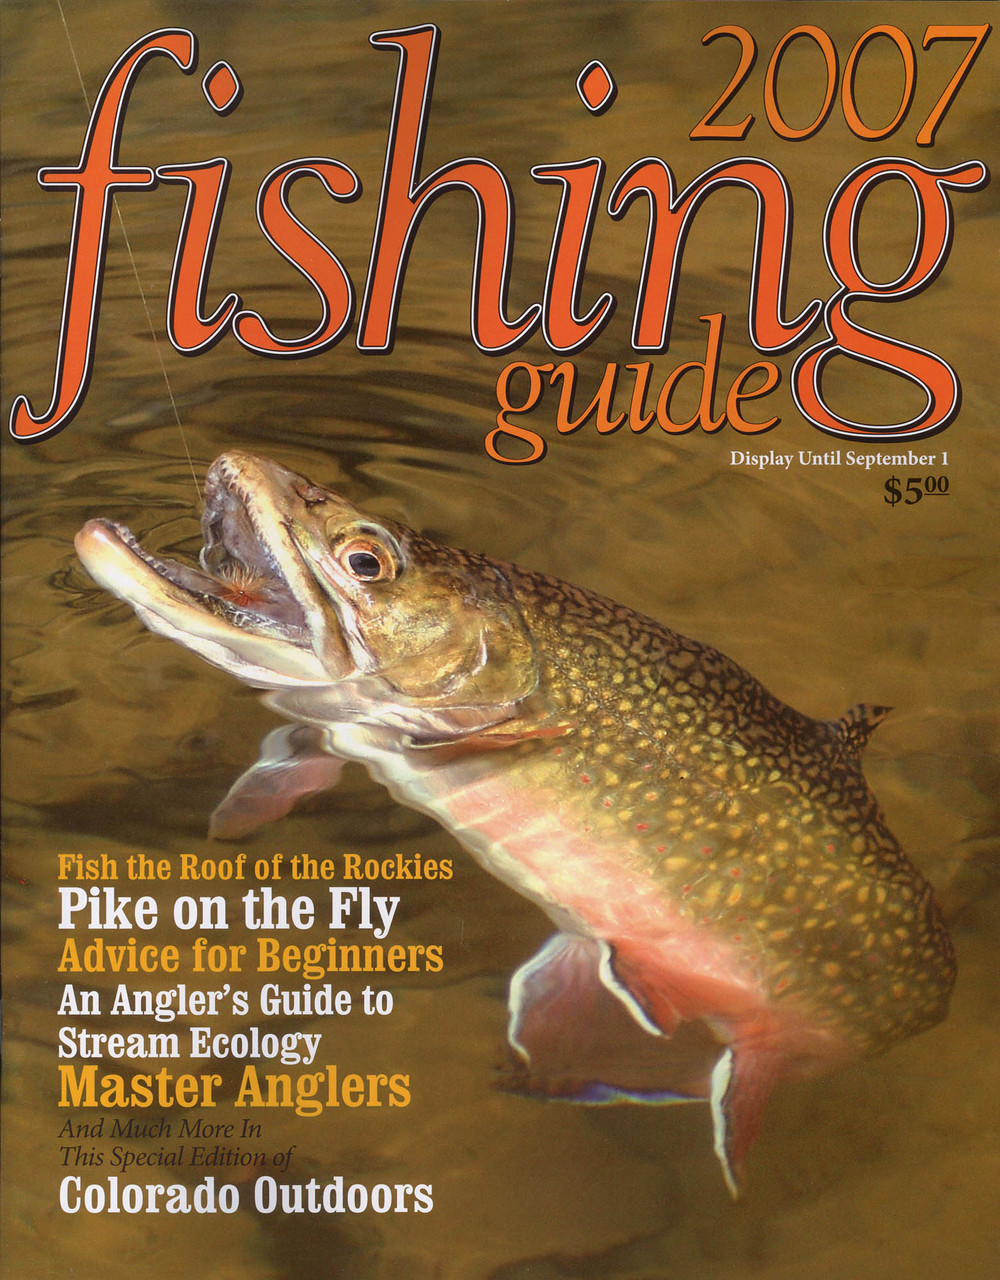 Colorado Outdoors Fishing Guide